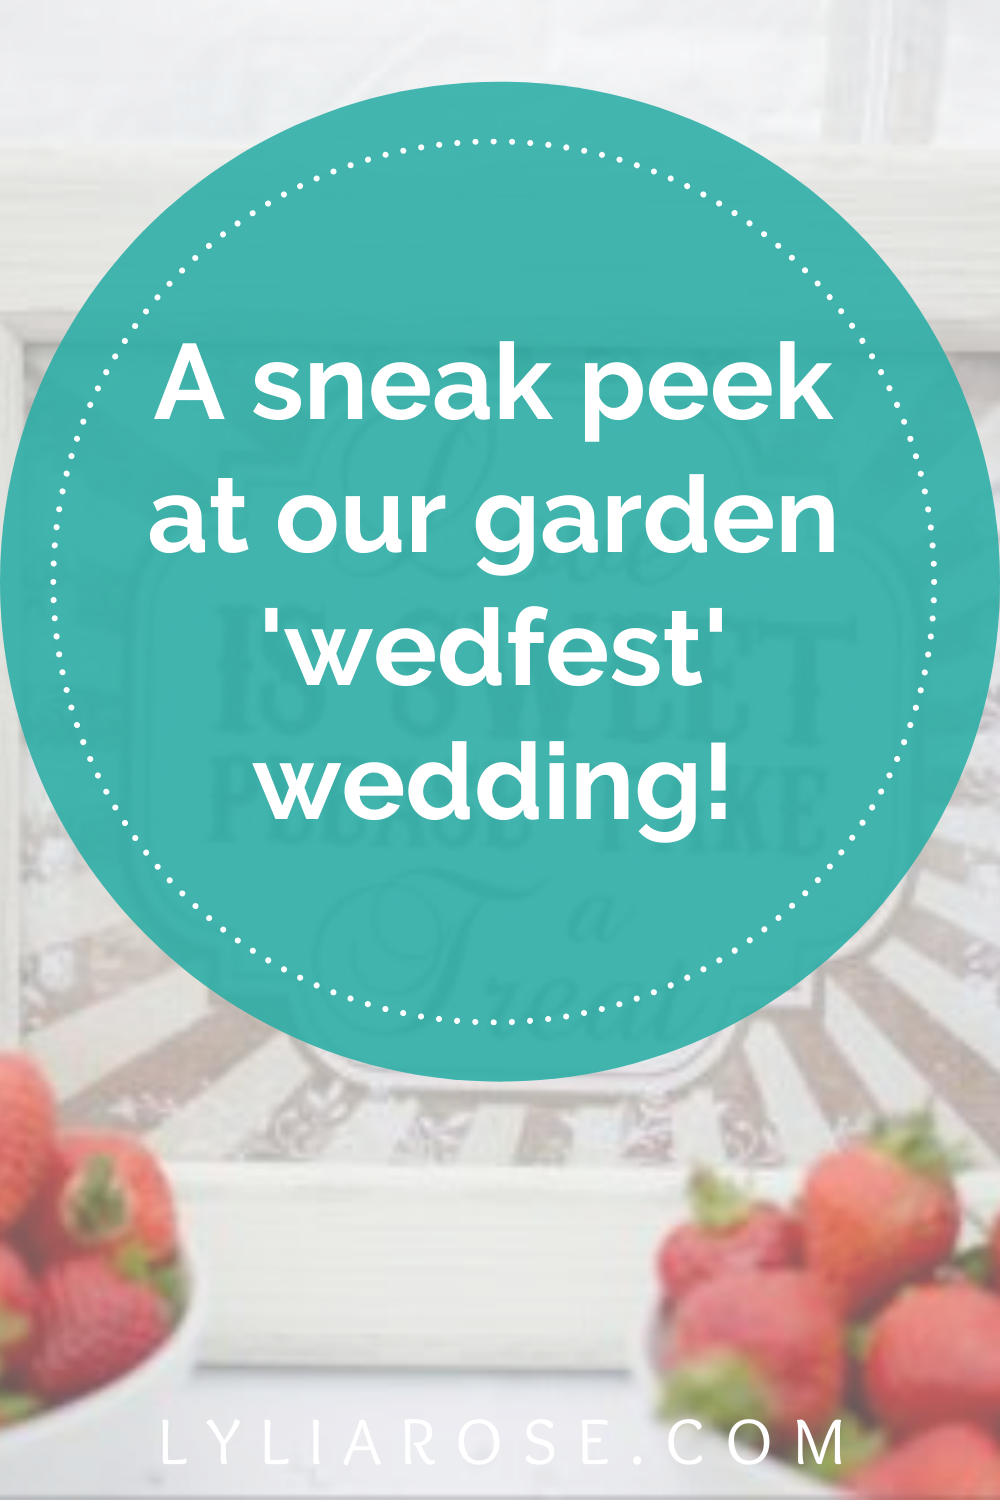 A sneak peek at our garden wedfest wedding! (2)